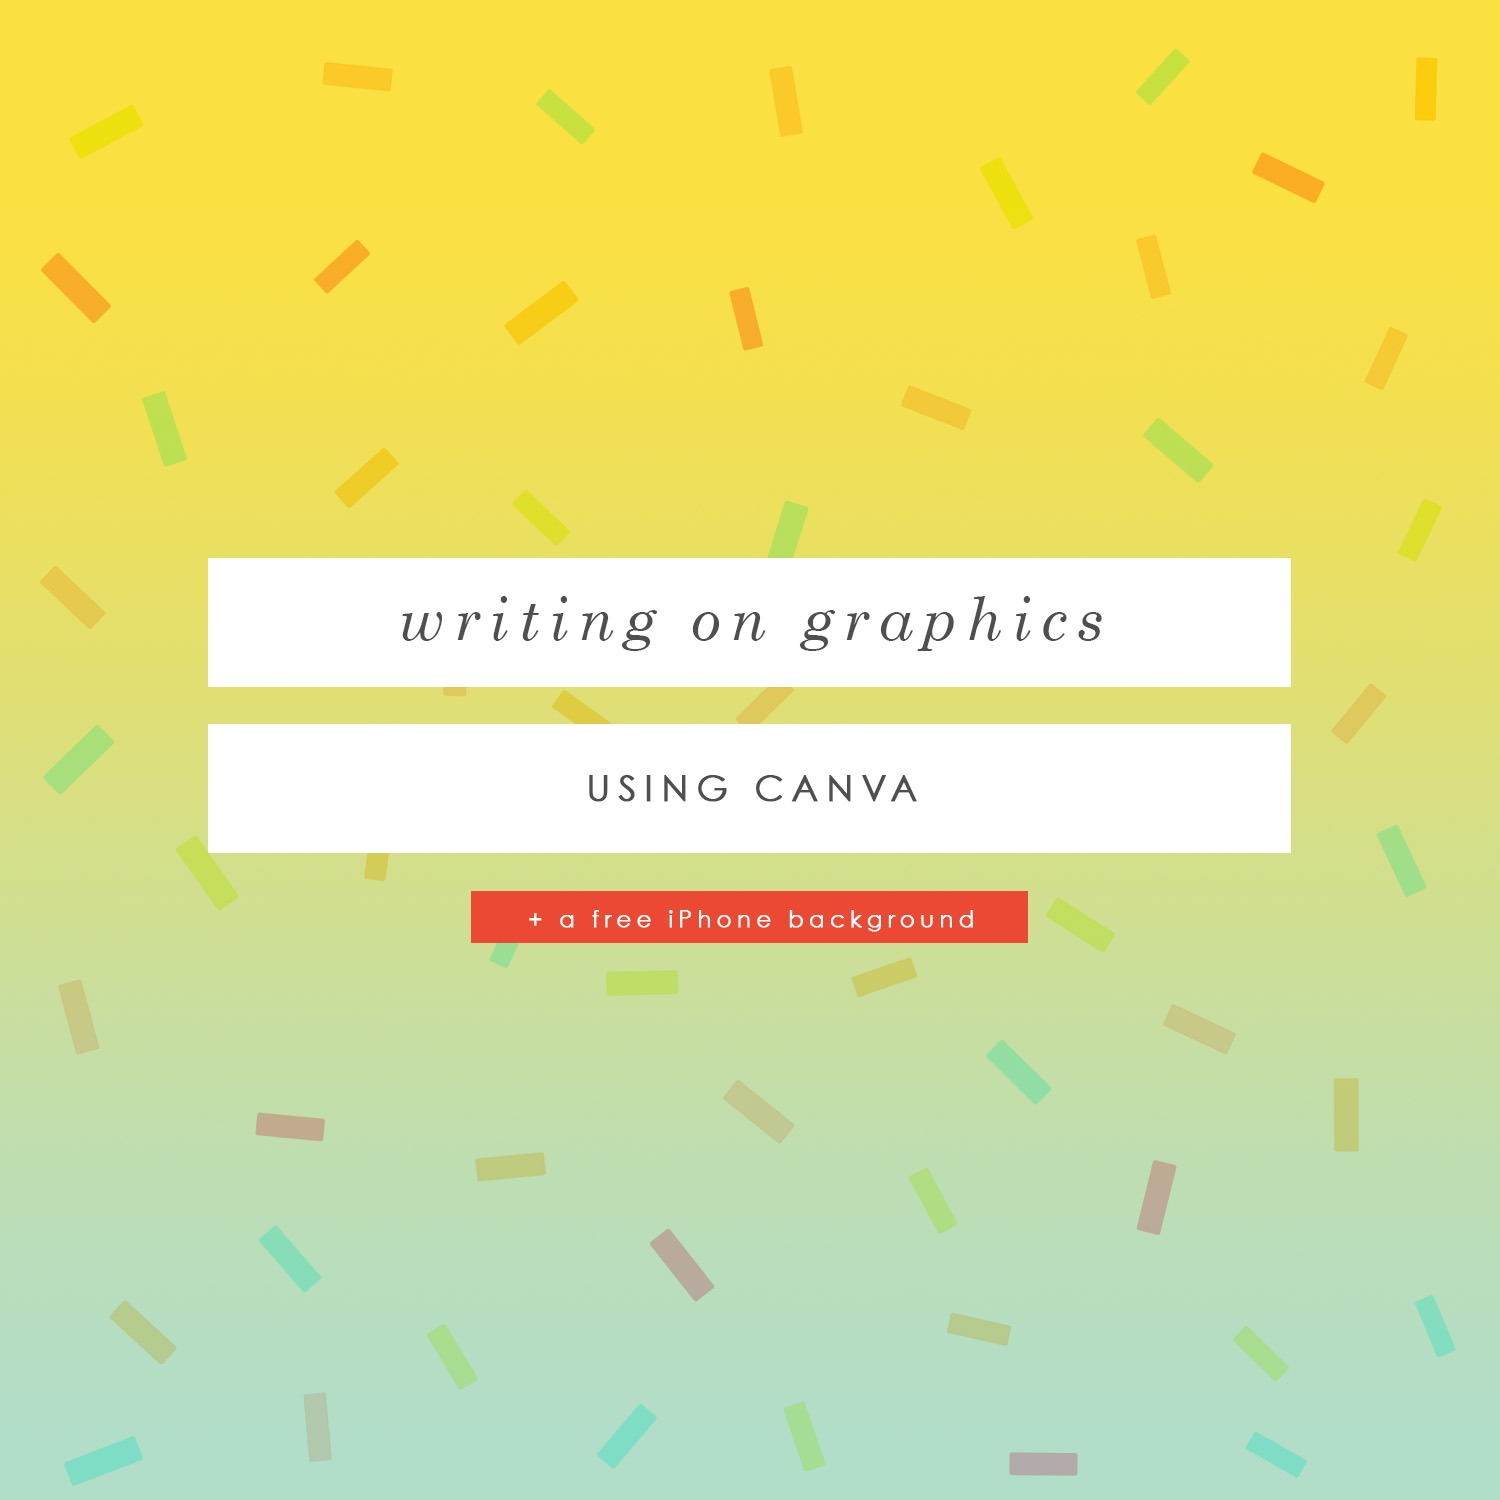 how to write on graphics using Canva